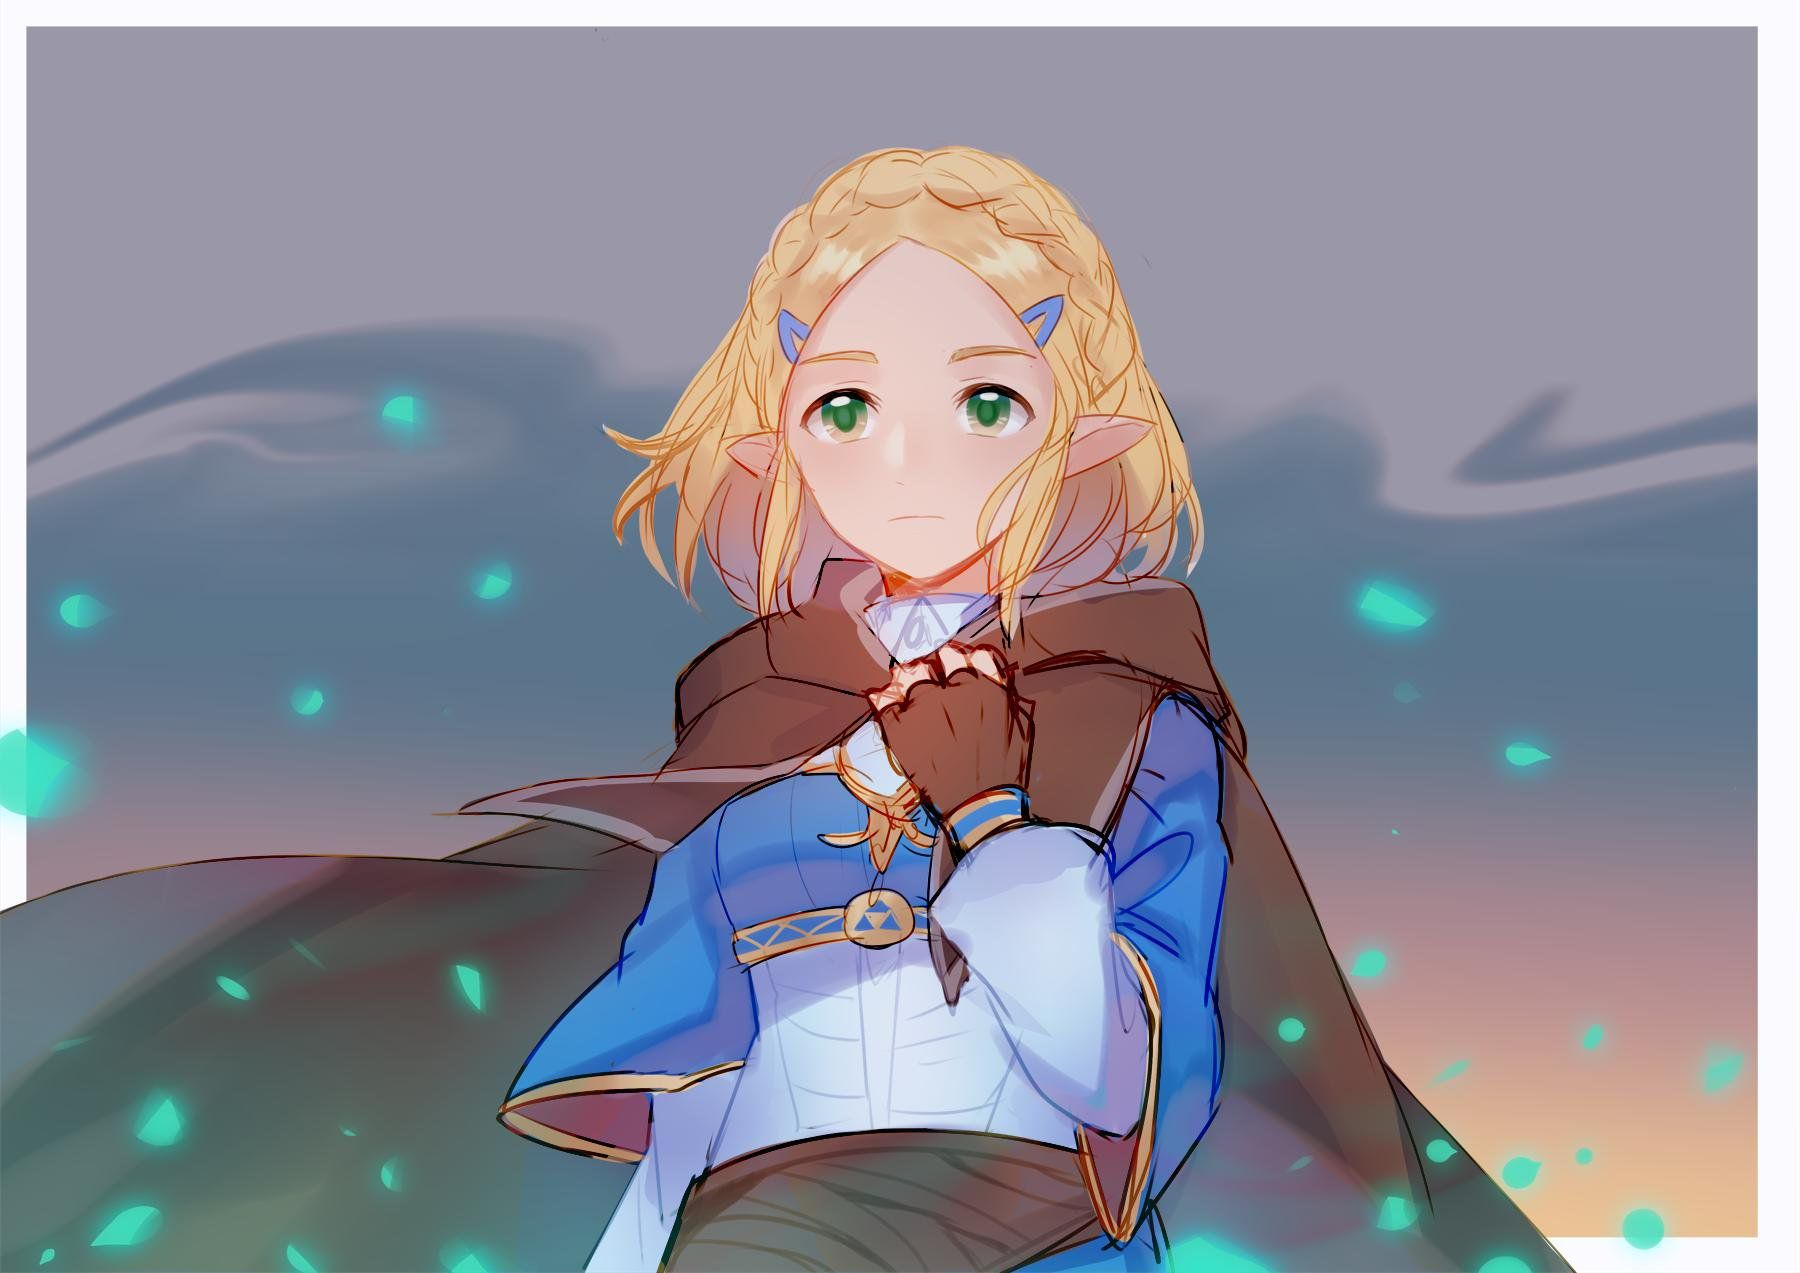 Princess Zelda Botw Short Hair By Chocomiru02 On Deviantart Legend Of Zelda Princess Zelda Breath Of The Wild